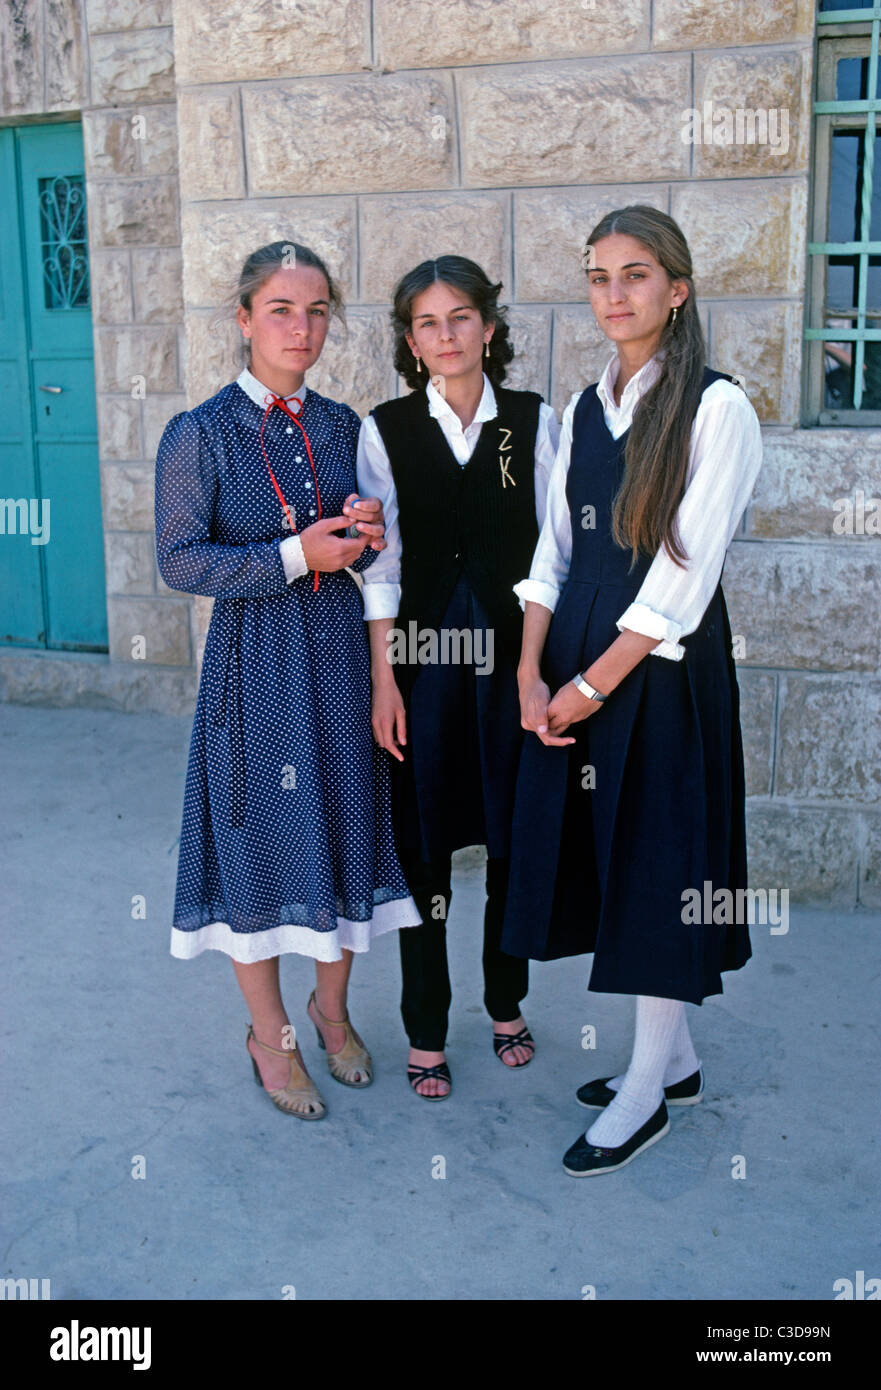 palestine single girls Beautiful palestinian women and girls - top-10 ranking representatives of palestine are modest and mysterious, carefully keep customs, culture of the people.